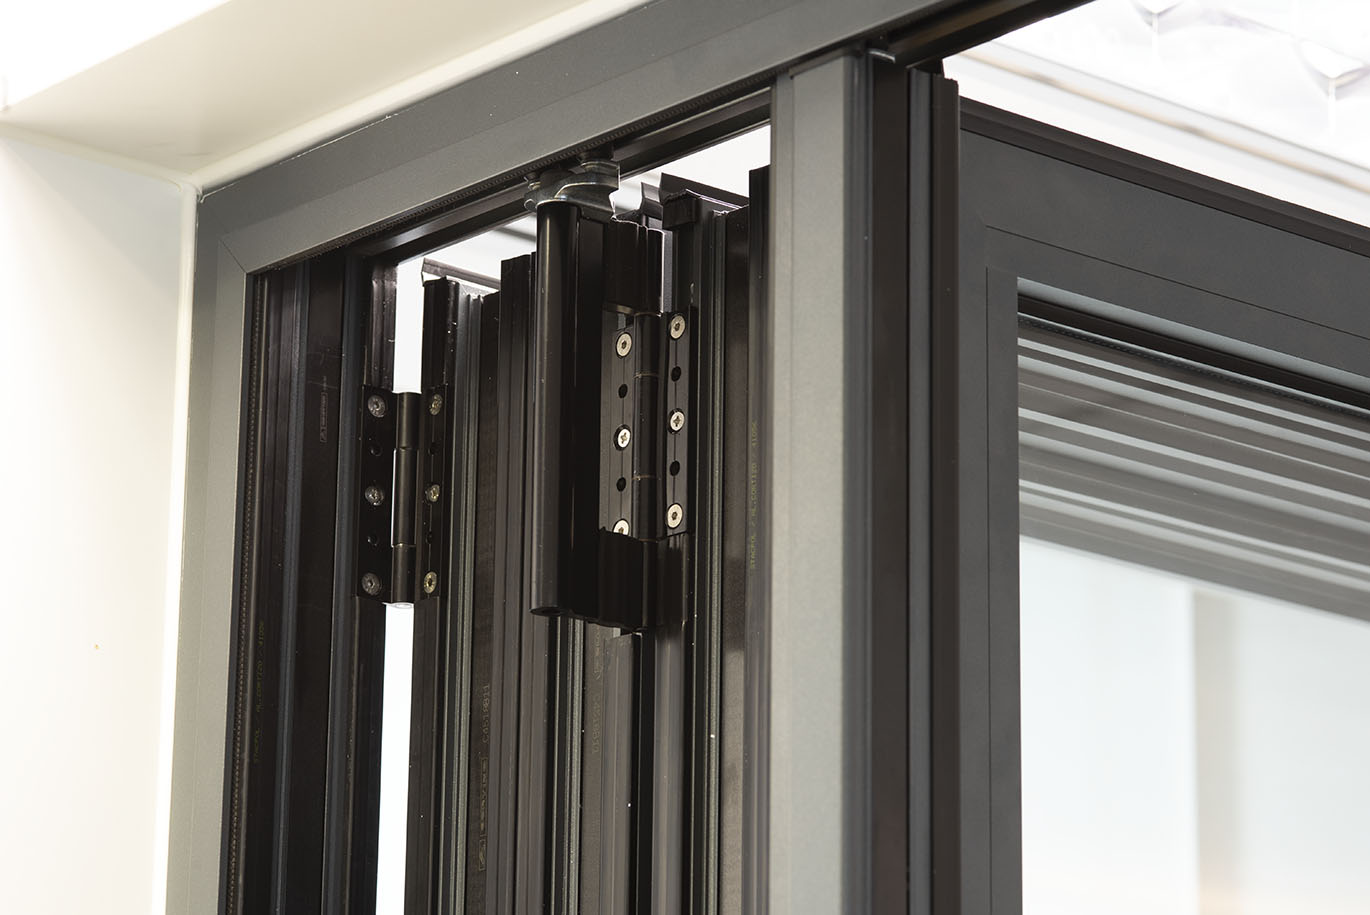 Cortizo BiFold Doors Upper Hinges